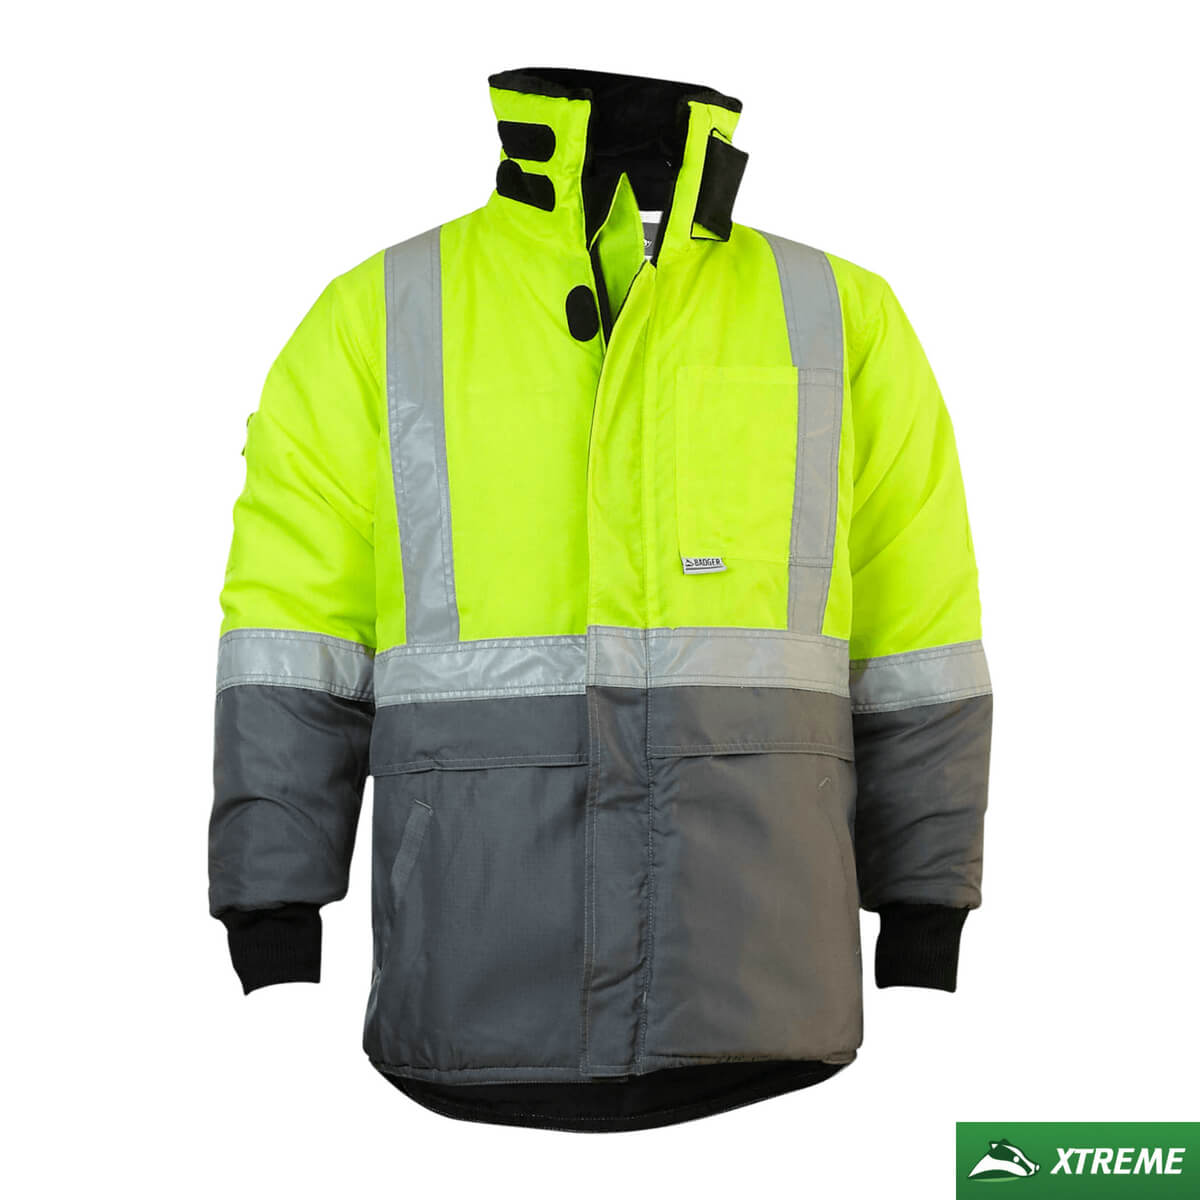 Extreme Cold Weather Work Clothing